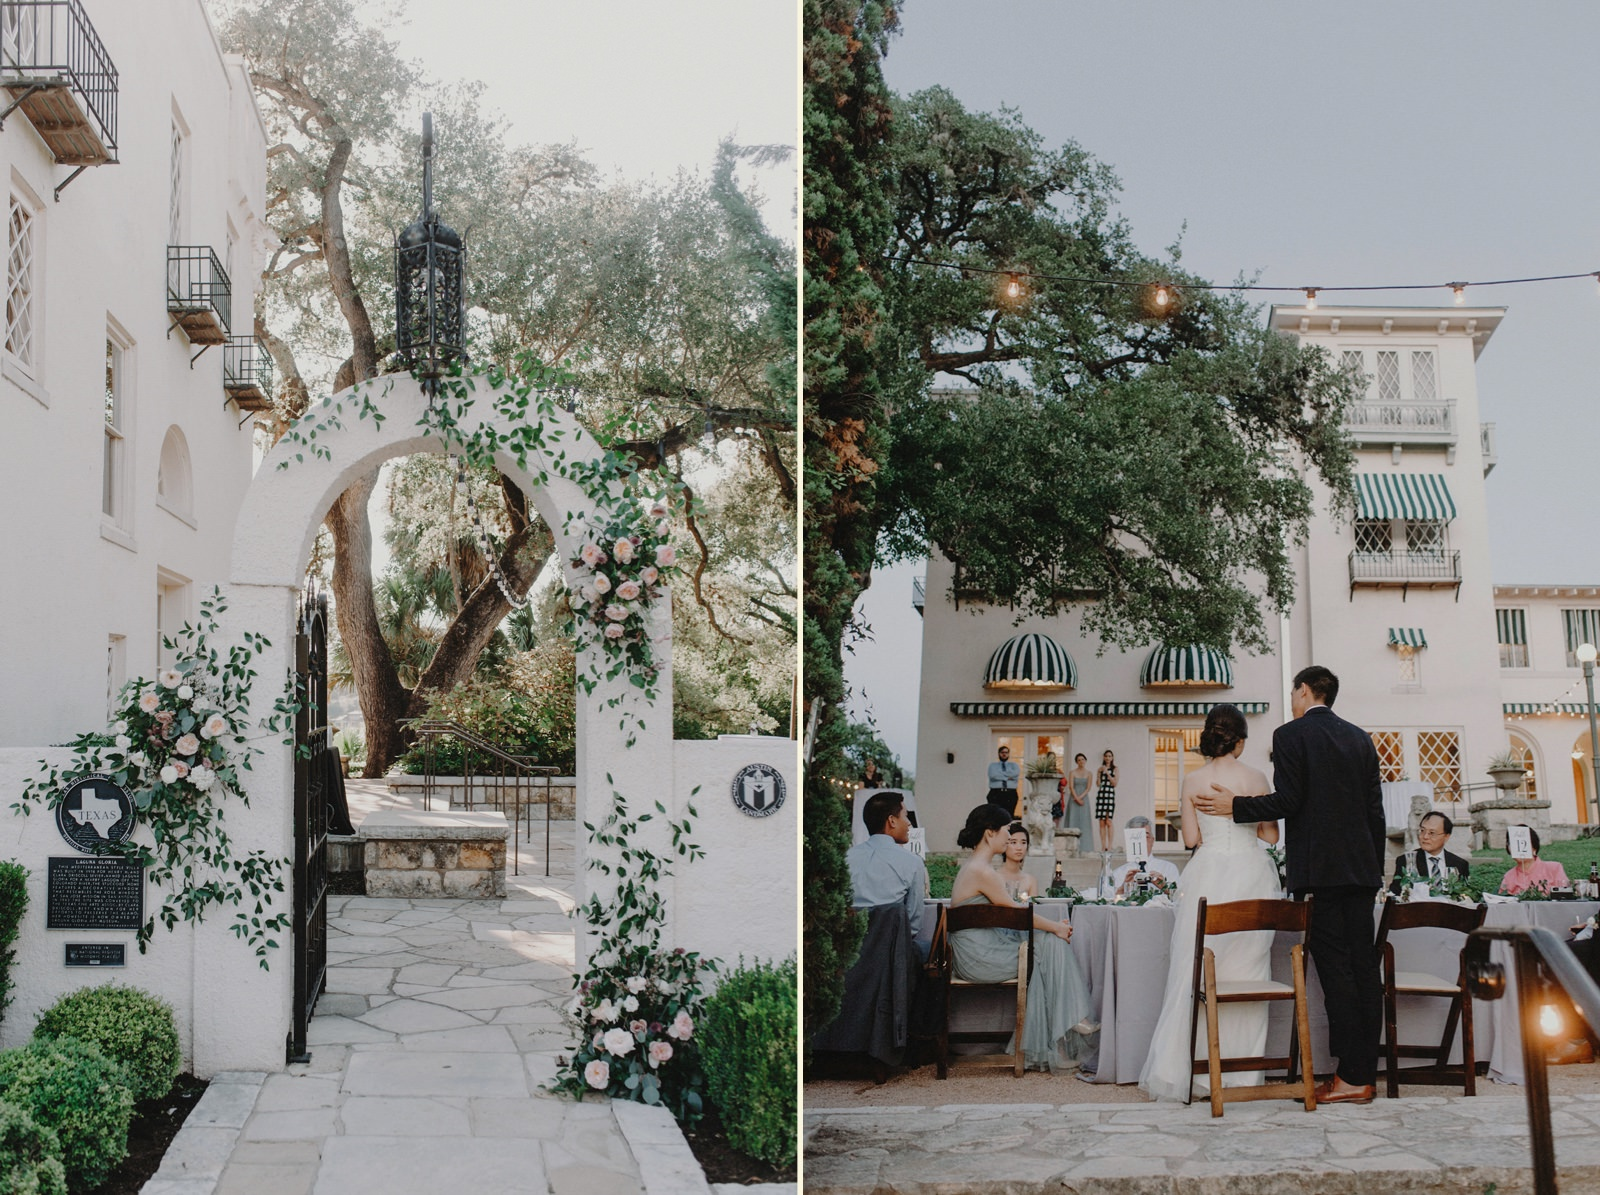 European-vibe Austin wedding venue Laguna Gloria with arch floral details and outdoor reception